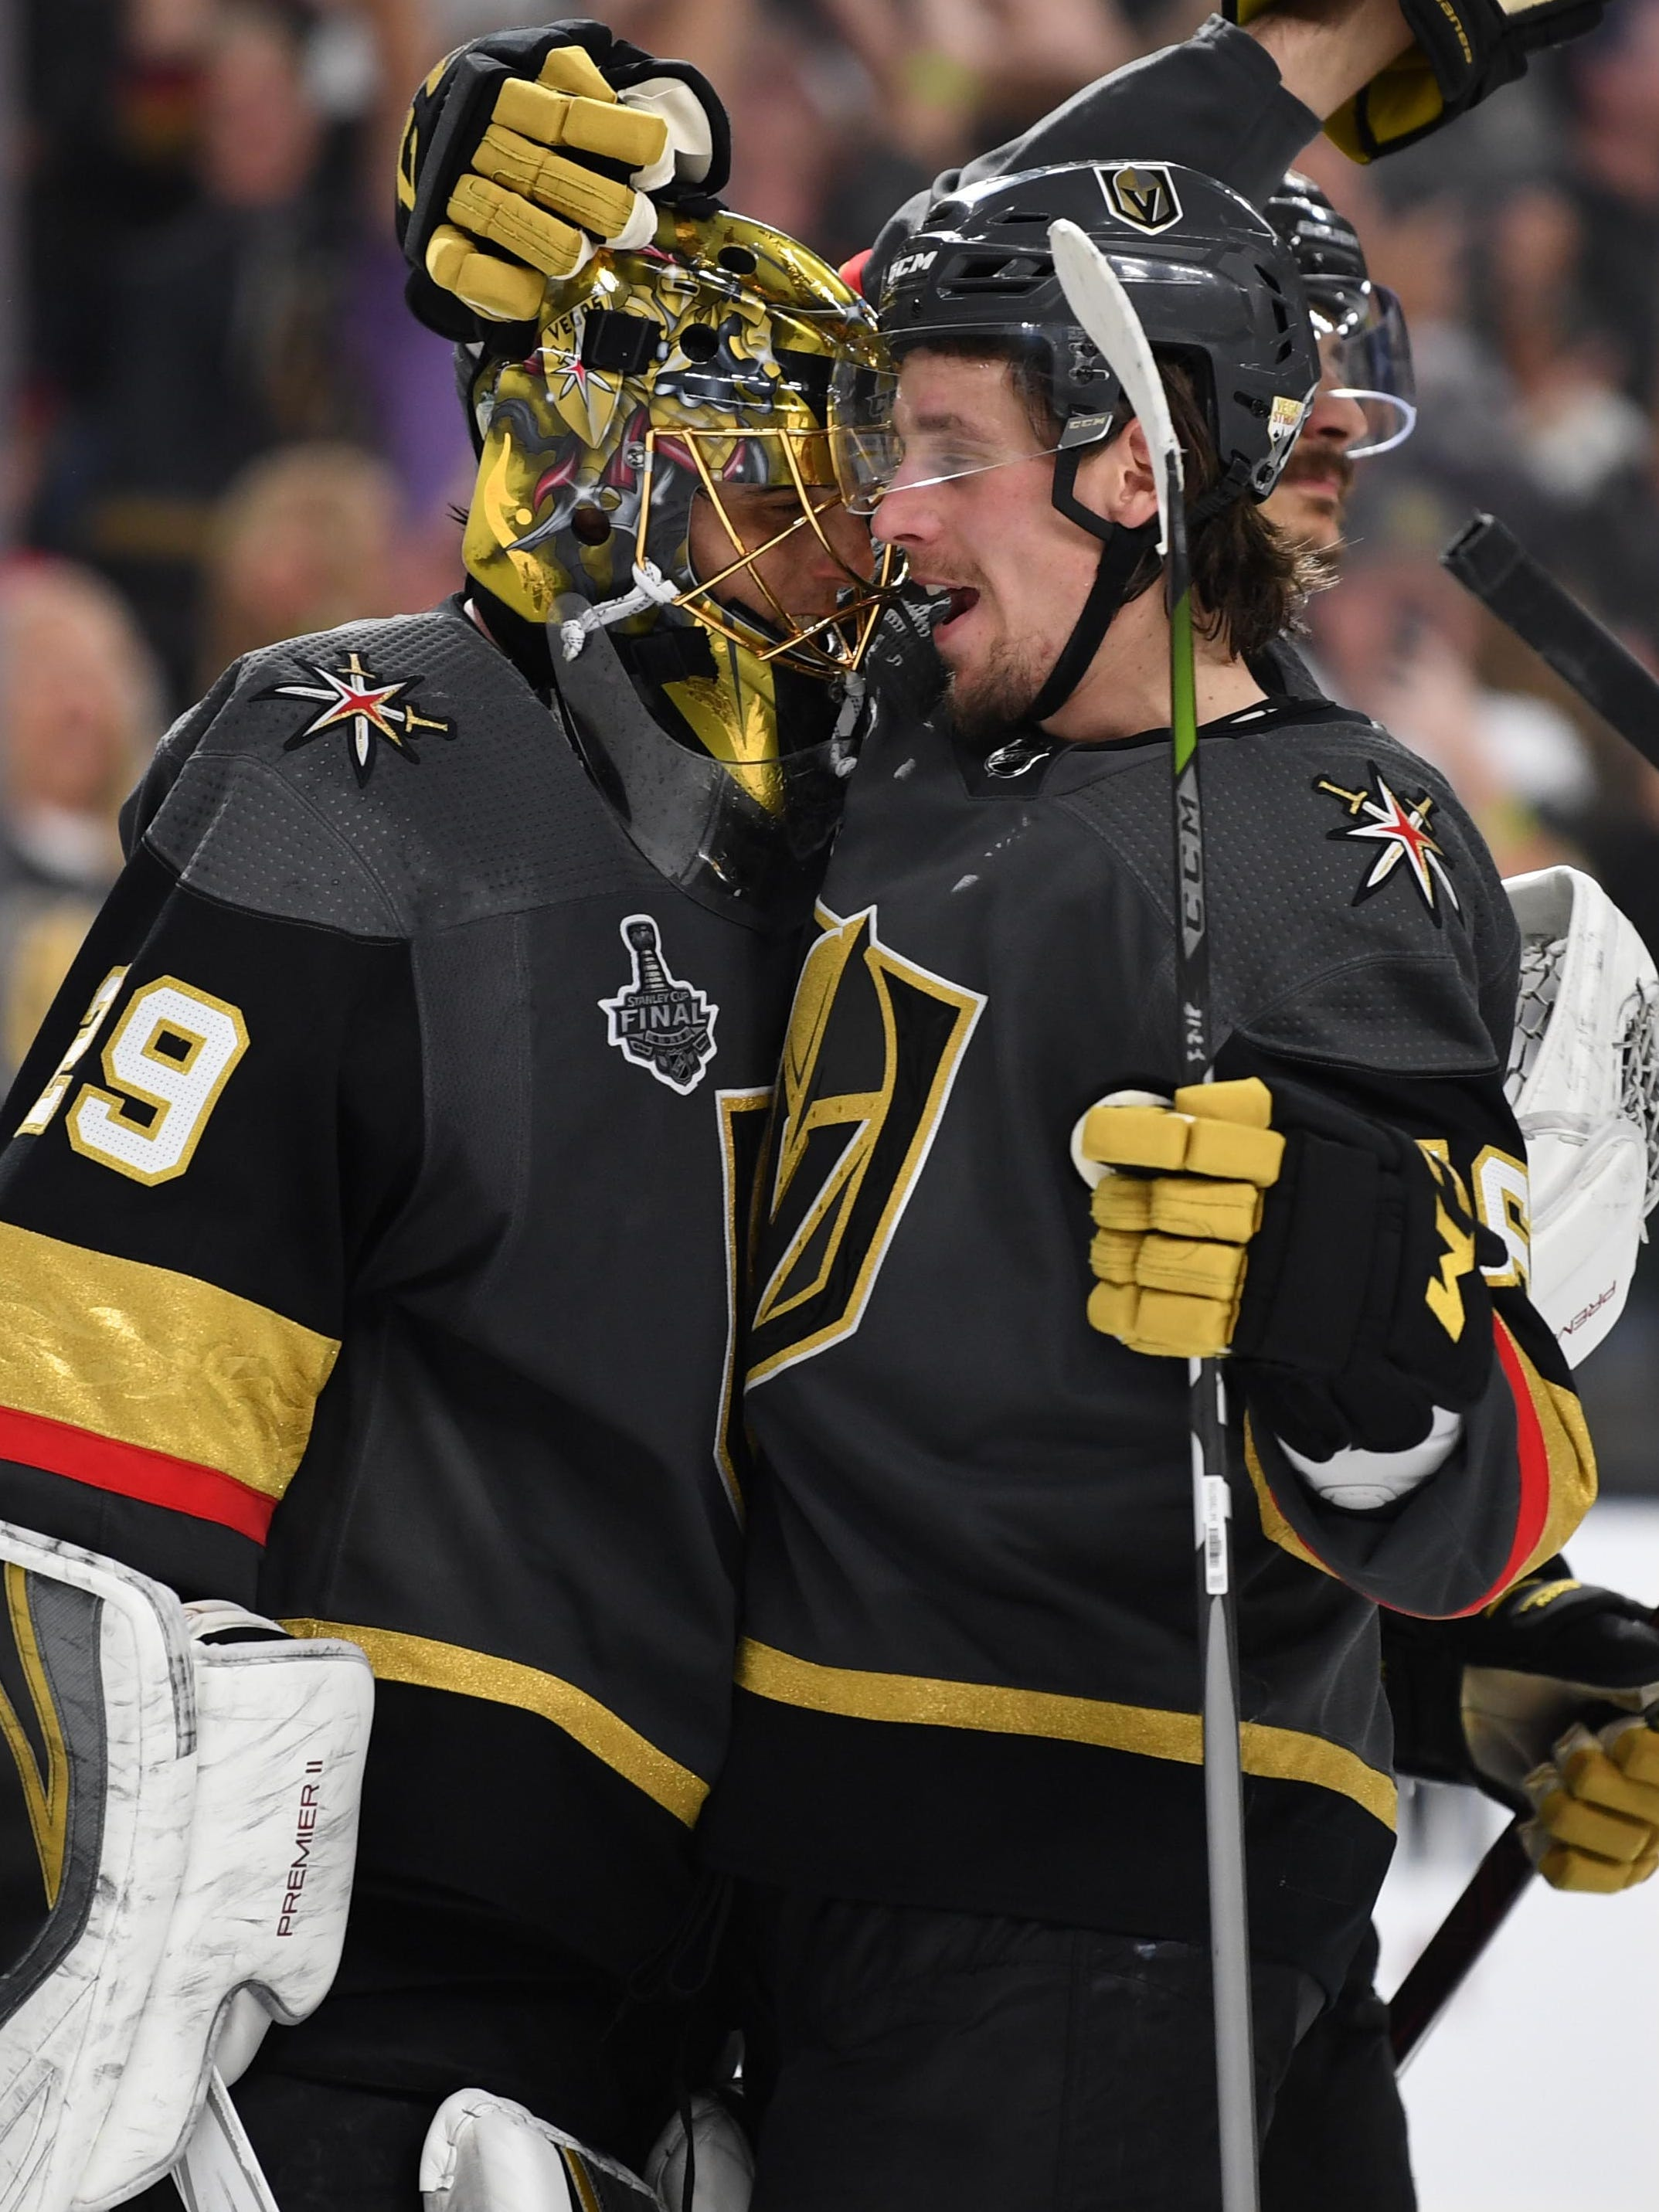 May 28, 2018; Las Vegas, NV, USA; Vegas Golden Knights goaltender Marc-Andre Fleury (29) celebrates with left wing Erik Haula (56) and left wing David Perron (57) after defeating the Washington Capitals in game one of the 2018 Stanley Cup Final at T-Mobile Arena. Mandatory Credit: Stephen R. Sylvanie-USA TODAY Sports ORG XMIT: USATSI-381963 ORIG FILE ID:  20180528_jel_cs1_226.jpg